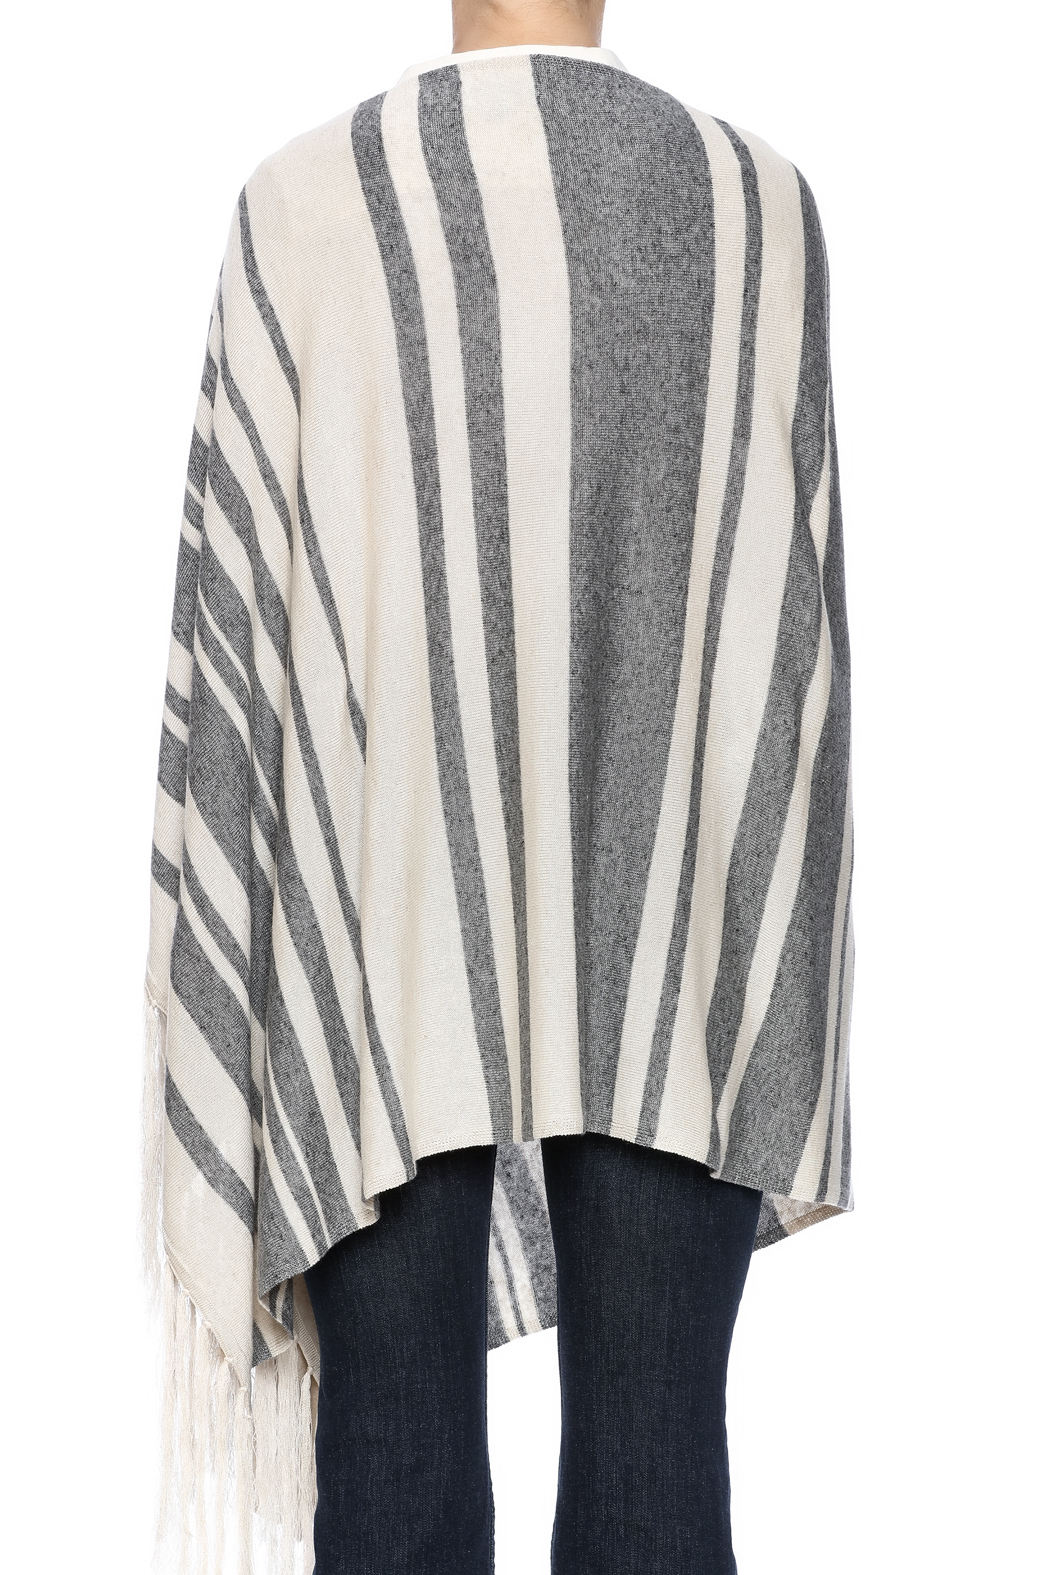 Michael Stars Stripped Poncho - Back Cropped Image